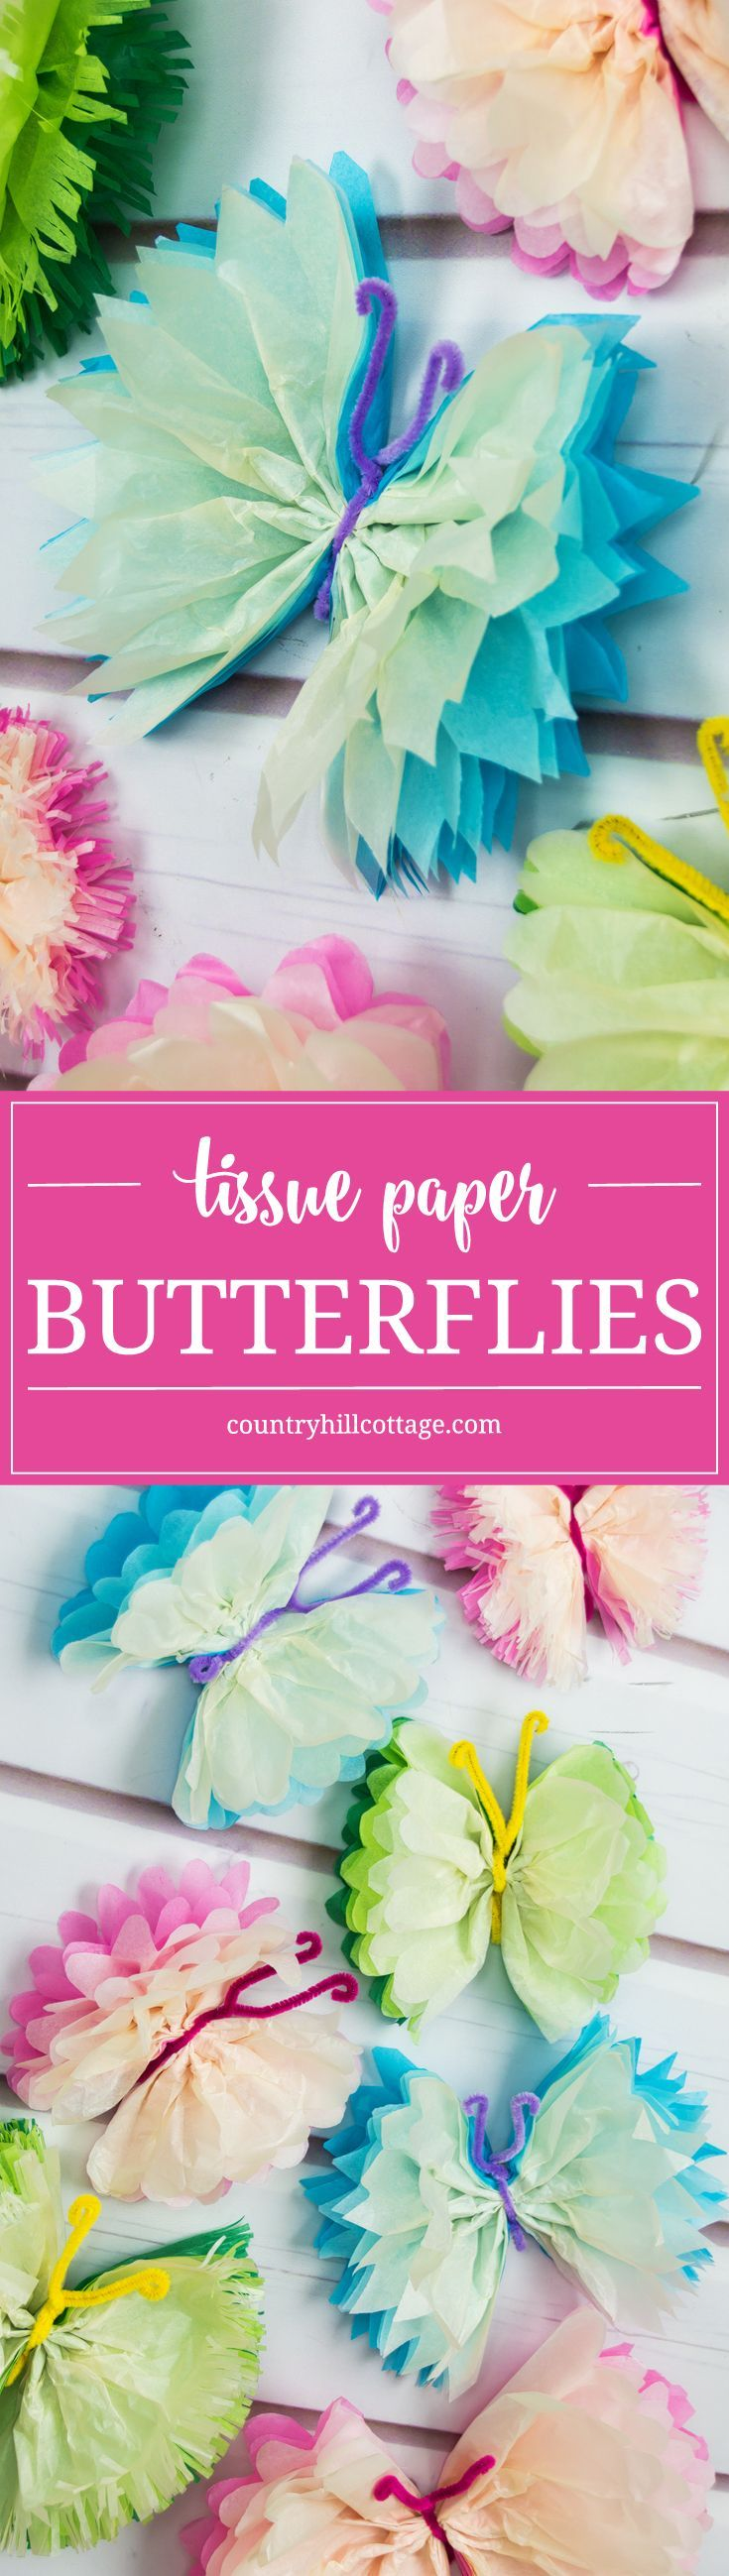 Frilly tissue paper butterflies are a beautiful decoration for parties and weddings! In this paper craft DIY, we show an easy technique to create colourful and elegant butterflies using tissue paper and pipe cleaner. #papercrafts #DIY #decor   countryhillcottage.com